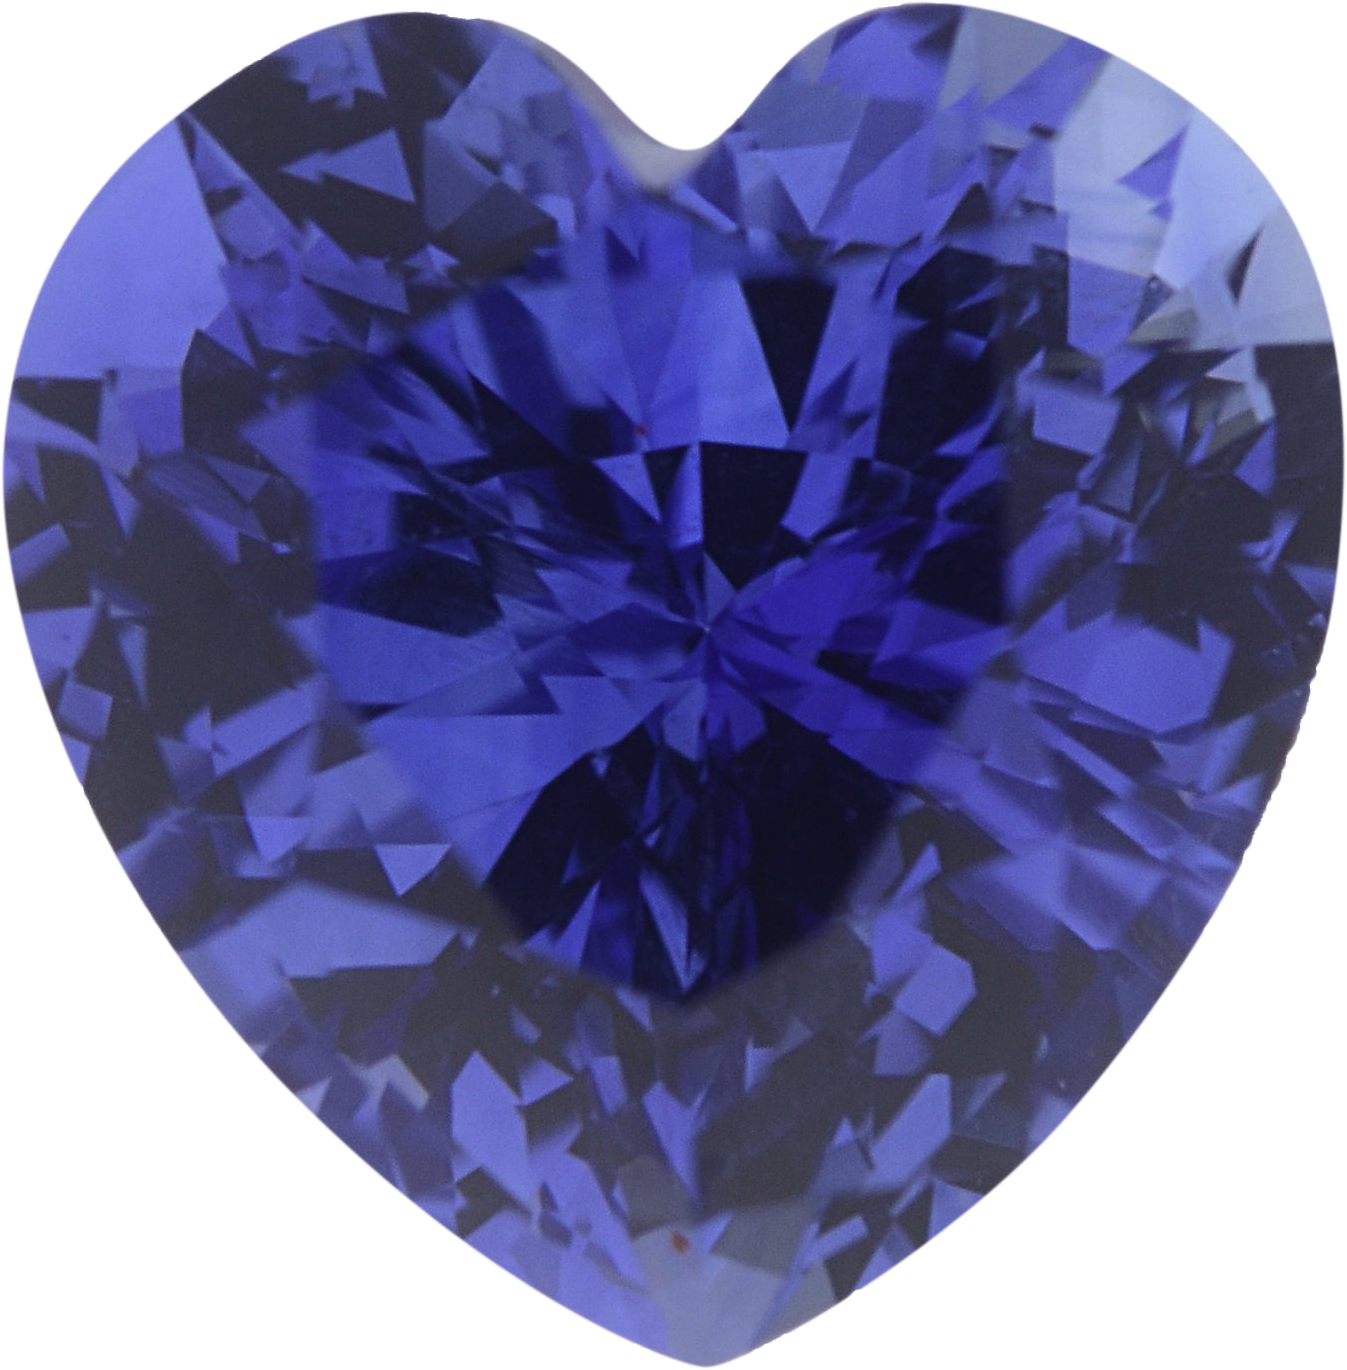 1.44 carats Blue Loose Sapphire Gemstone in Heart Cut, 6.7 x 6.62 mm